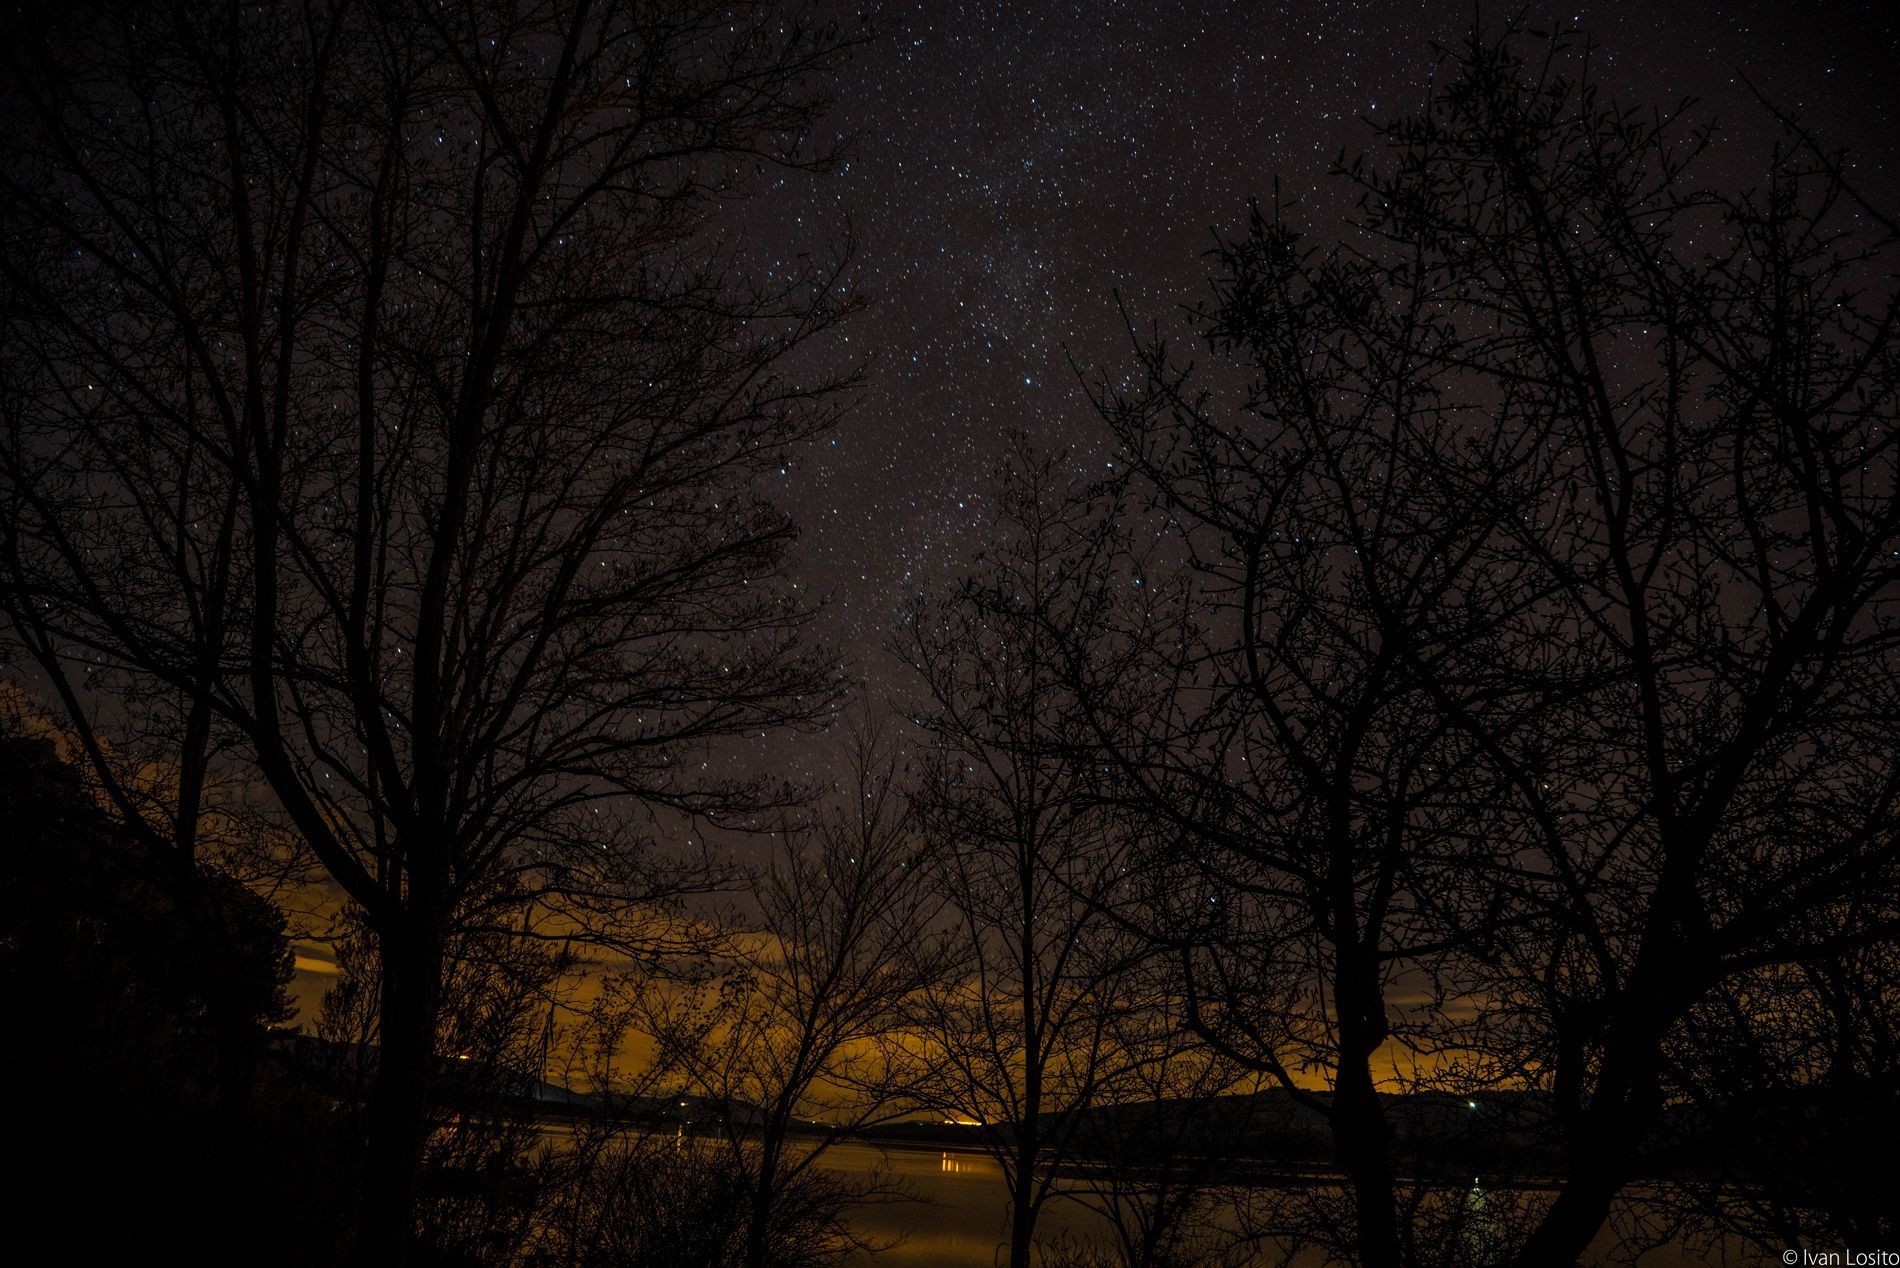 Photograph stars and trees by ivan losito on 500px